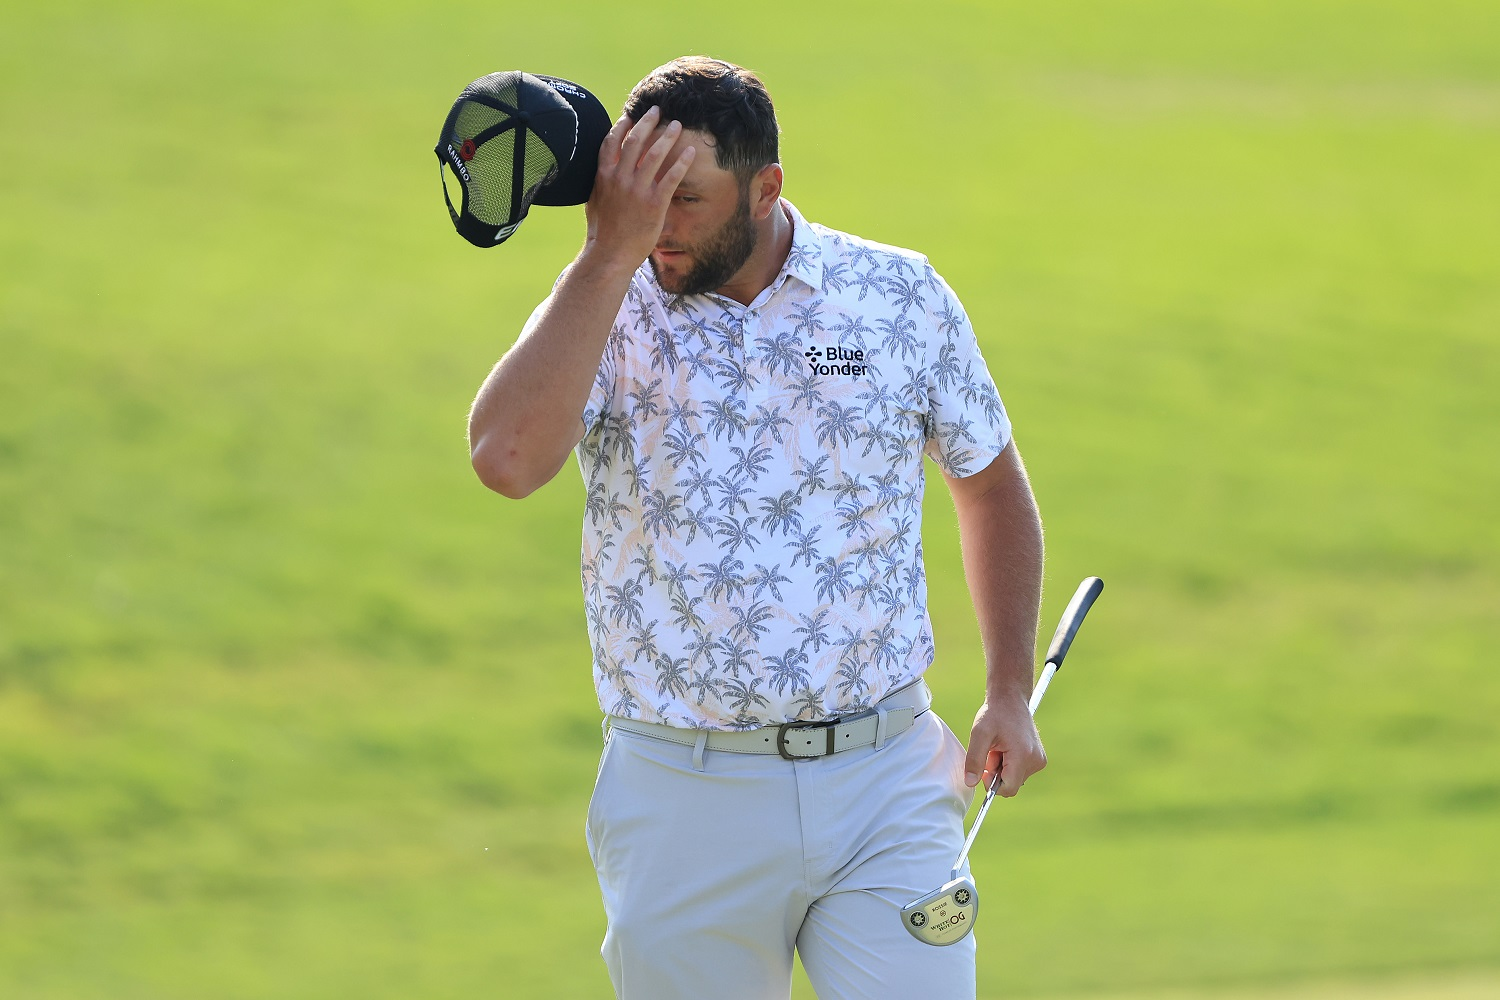 Jon Rahm's Disaster Came 8 Years After Hunter Mahan Quit a PGA Tournament With the Lead